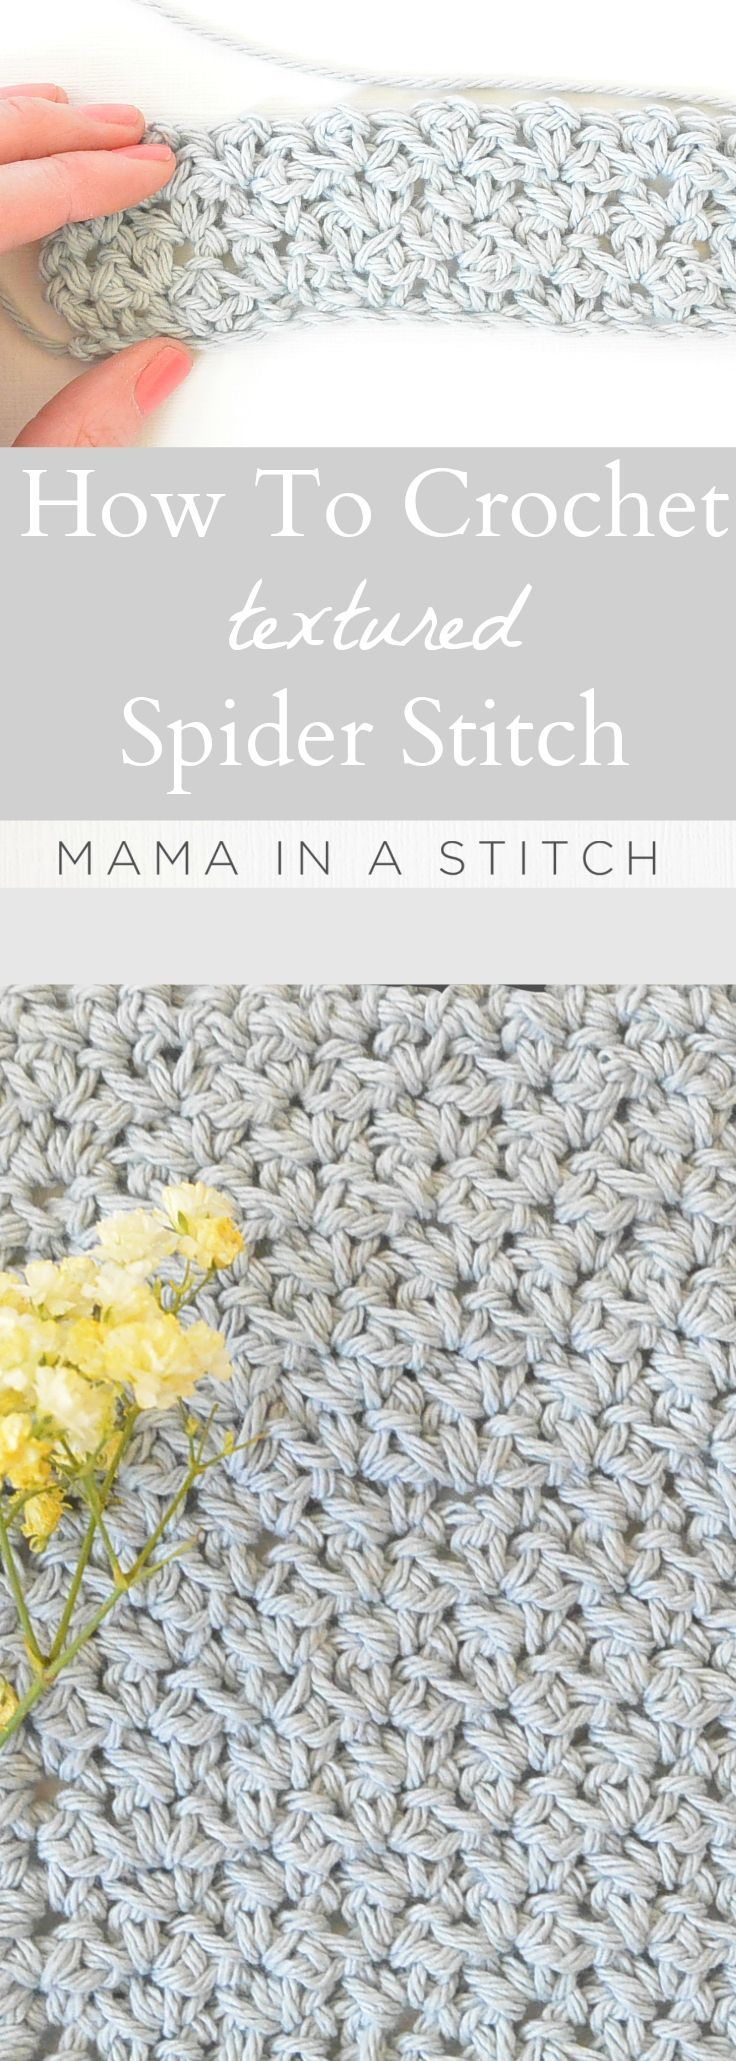 How To Crochet the Spider Stitch via /MamaInAStitch/. This free pattern and tuto…